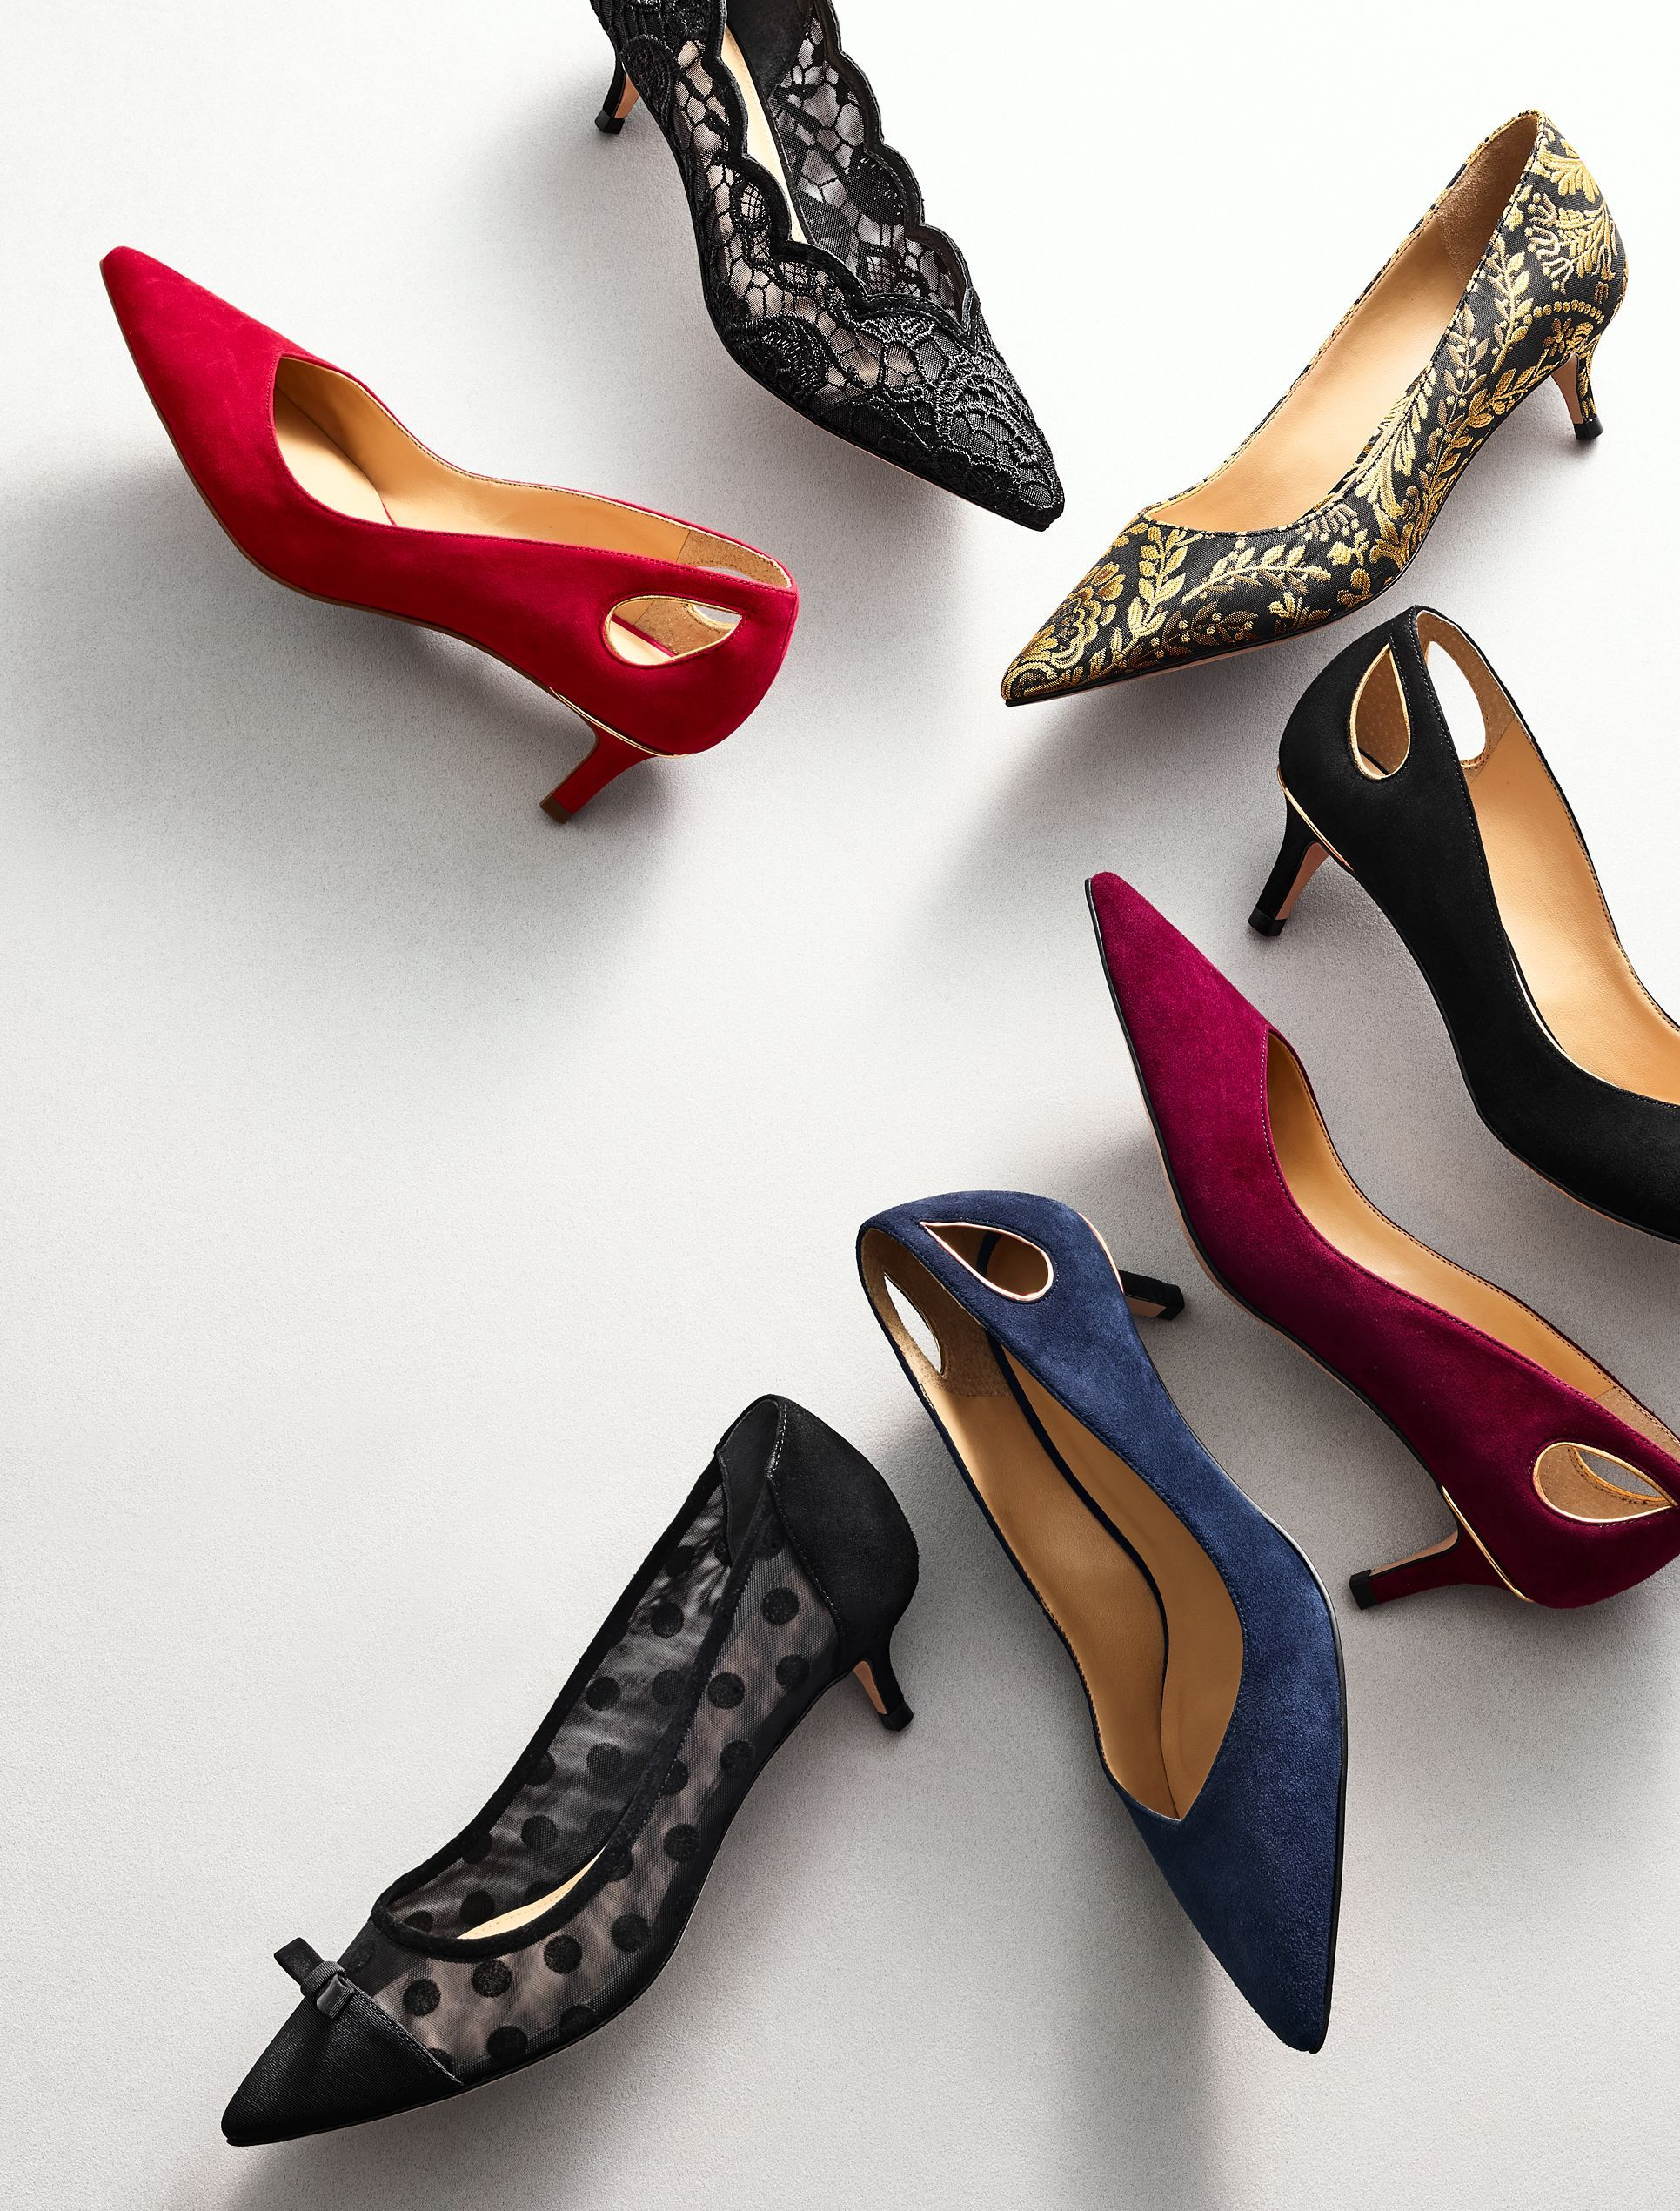 Comfort And Style Converge To Create These Elegant Pumps Slip Into A Pair This Season To Add A Luxe Holiday Party Ready Touch Heels Elegant Shoes Women Shoes [ 2541 x 1931 Pixel ]